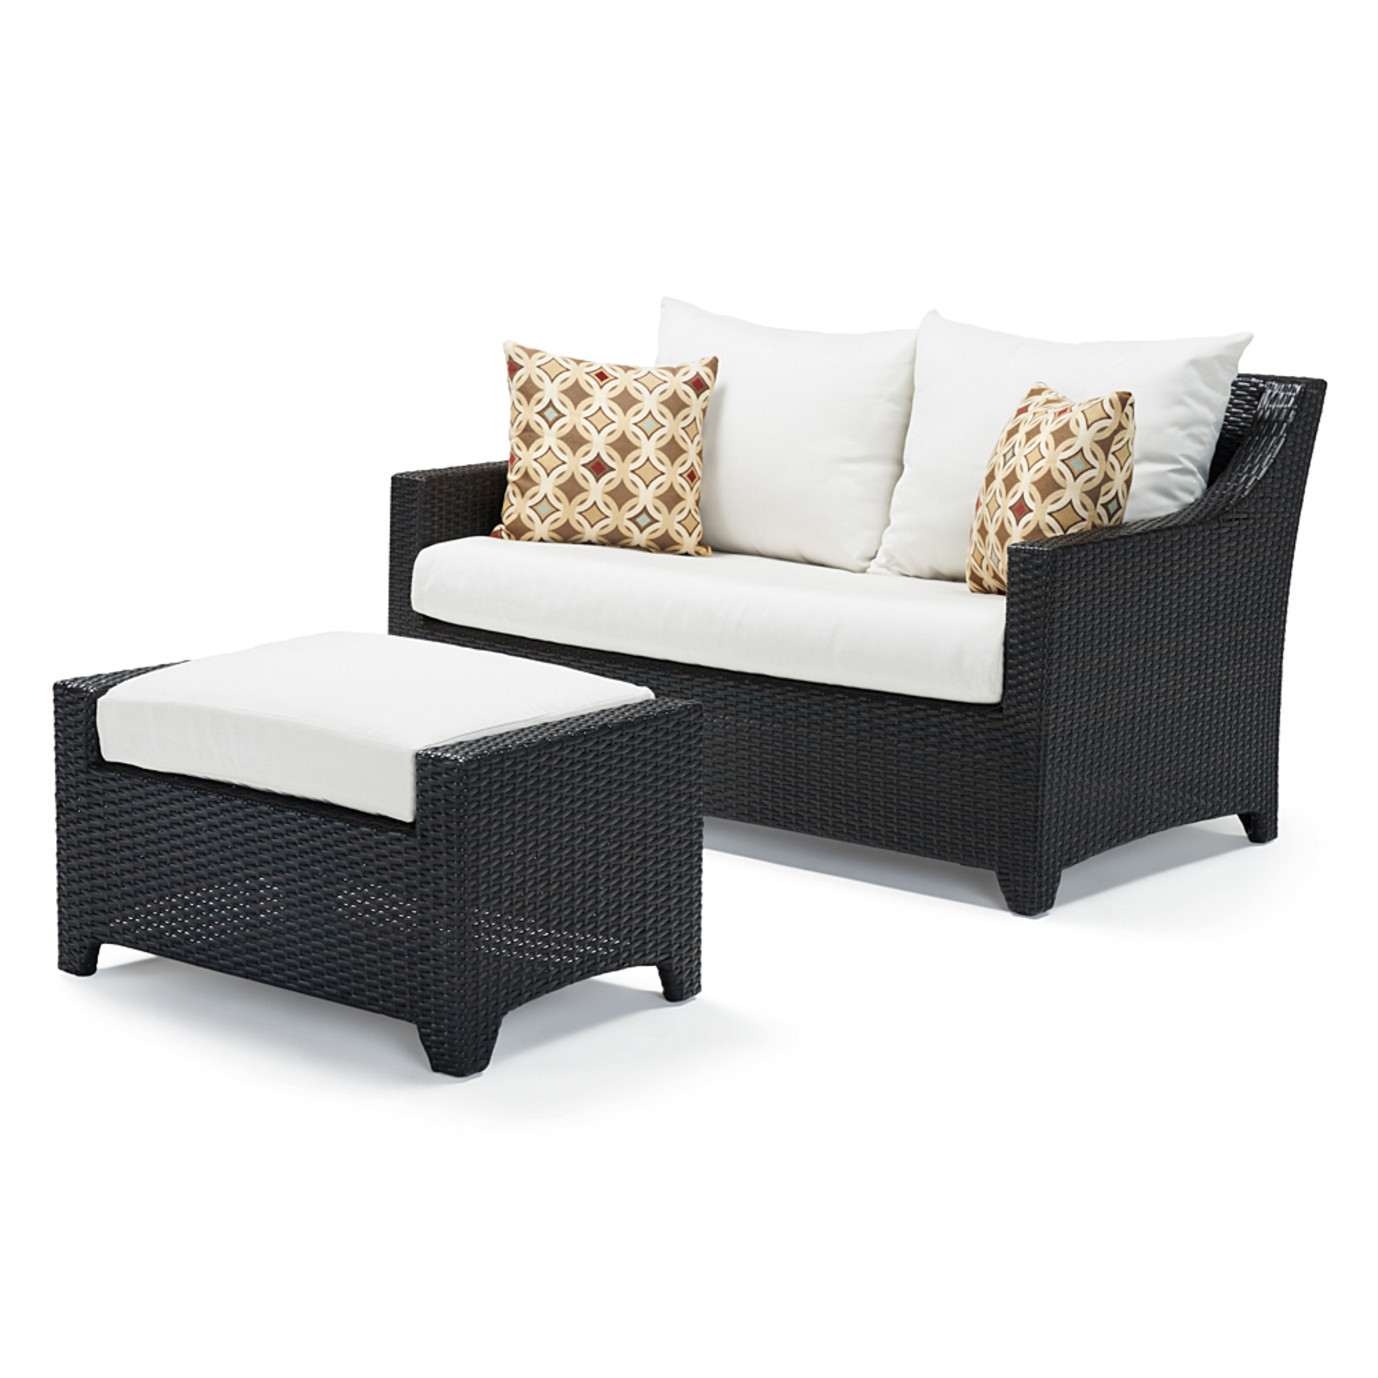 Deco™ Loveseat and Ottoman - Moroccan Cream